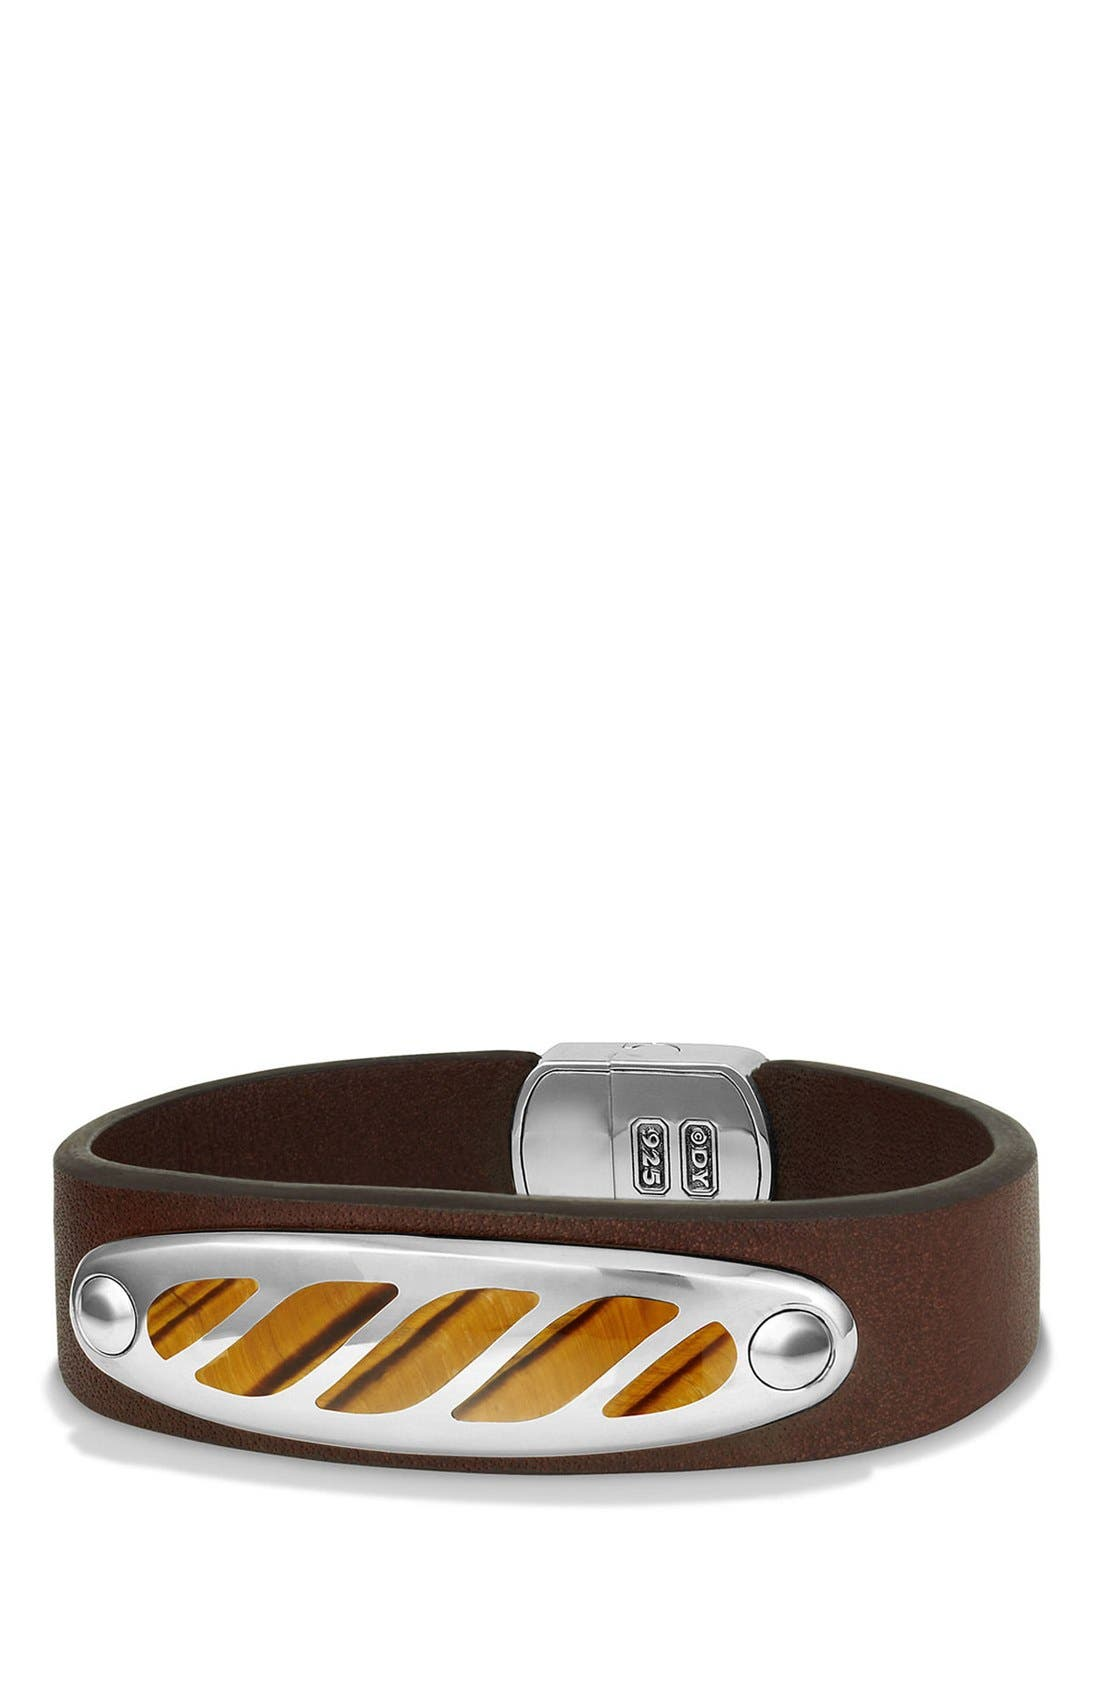 Alternate Image 1 Selected - David Yurman Graphic Cable Leather ID Bracelet